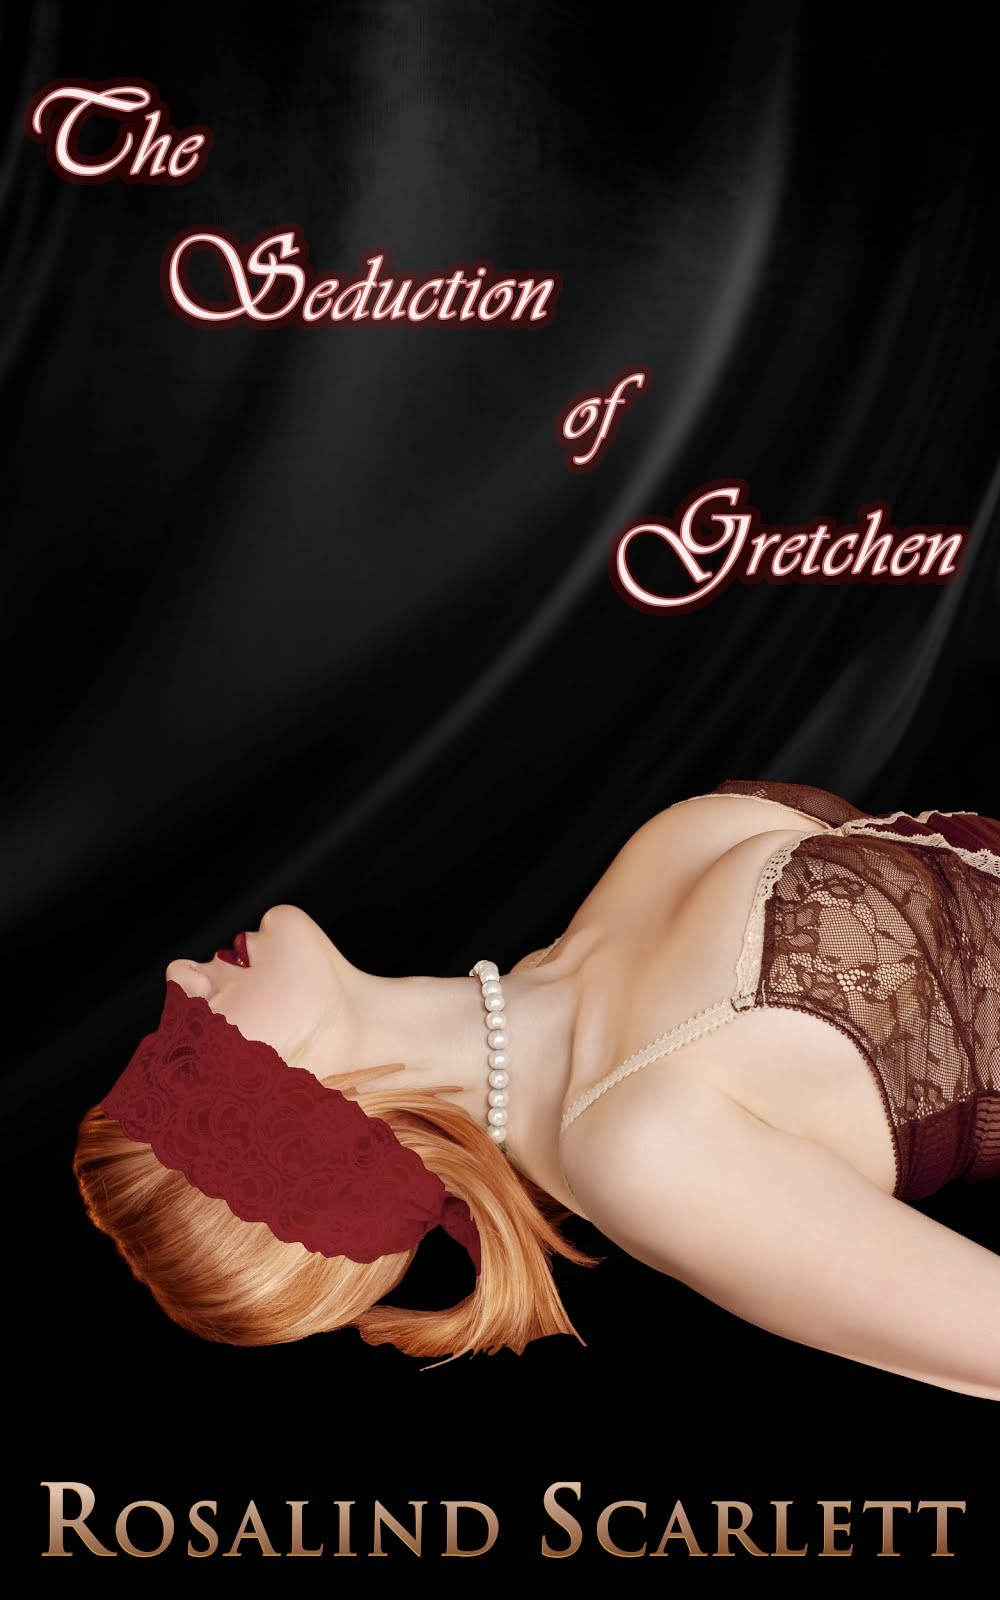 THE AWARD WINNING PNR EROTIC NOVELLA OF 2014!